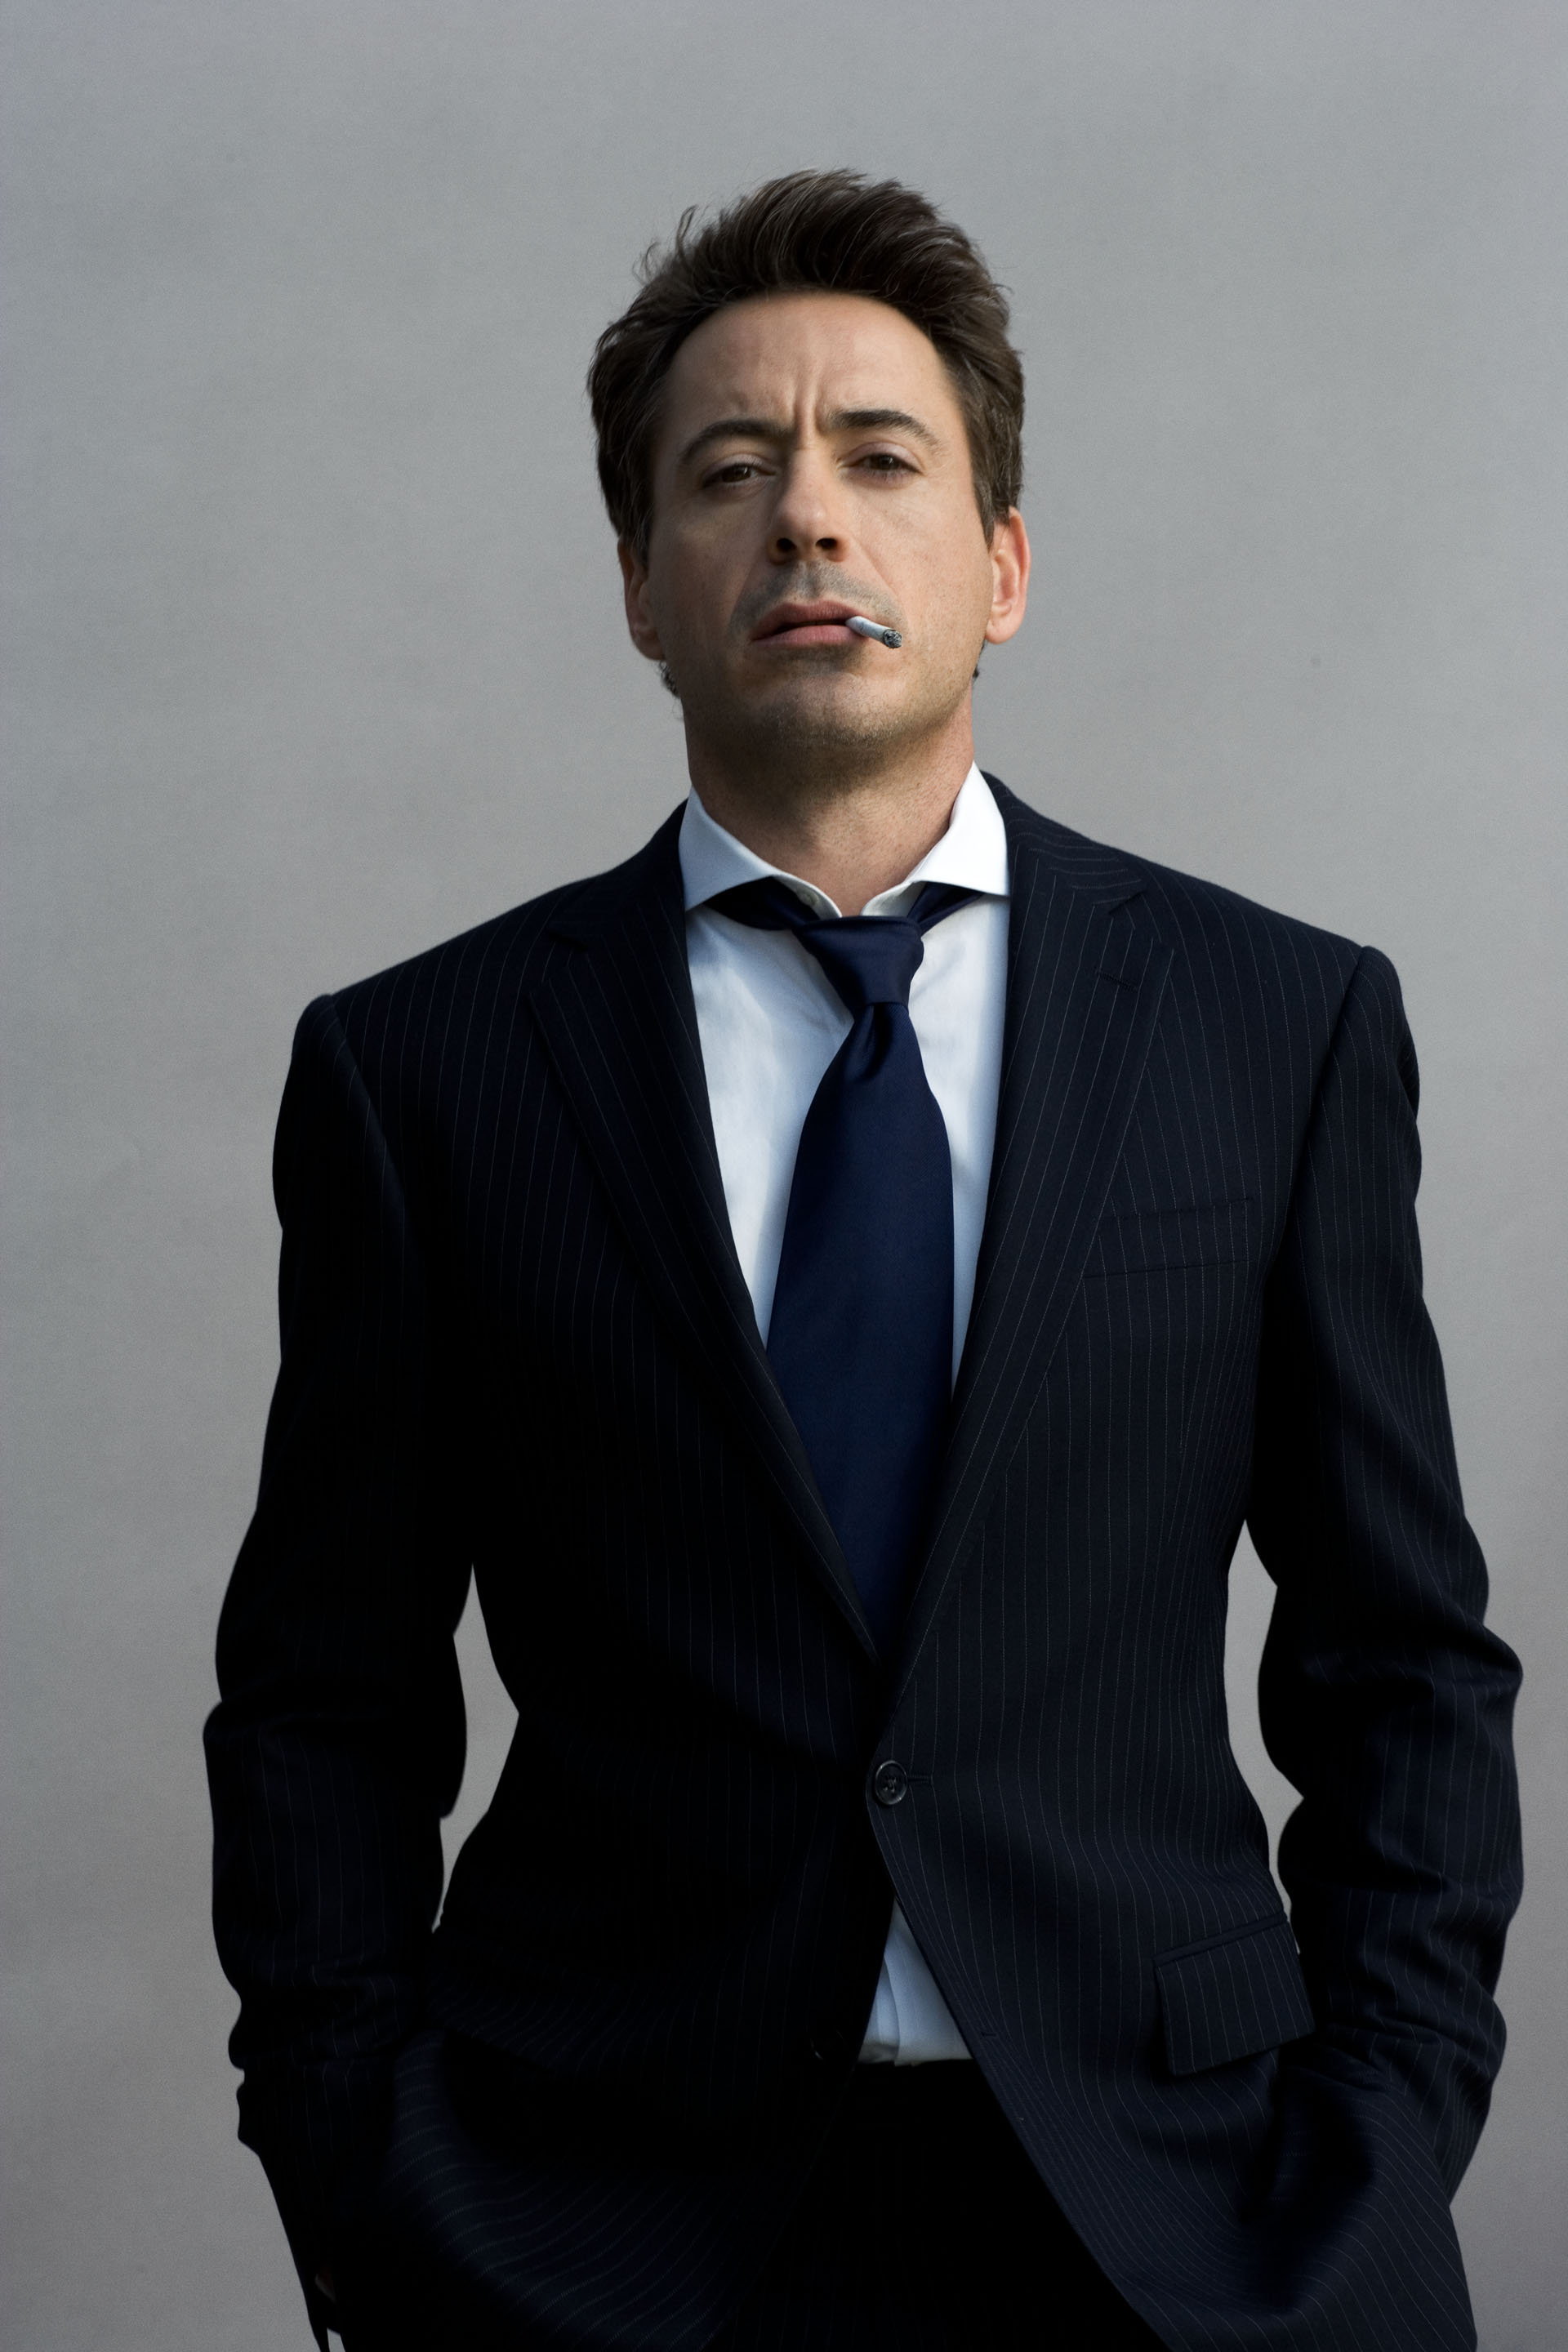 Robert Downey Jr HD wallpapers • PoPoPics.com Robert Downey